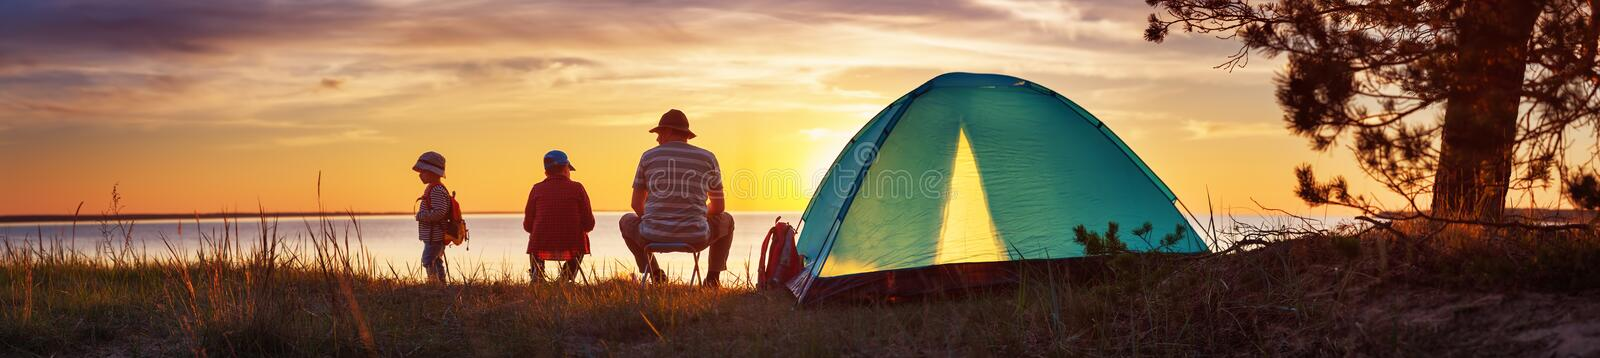 Family resting with tent in nature at sunset royalty free stock images